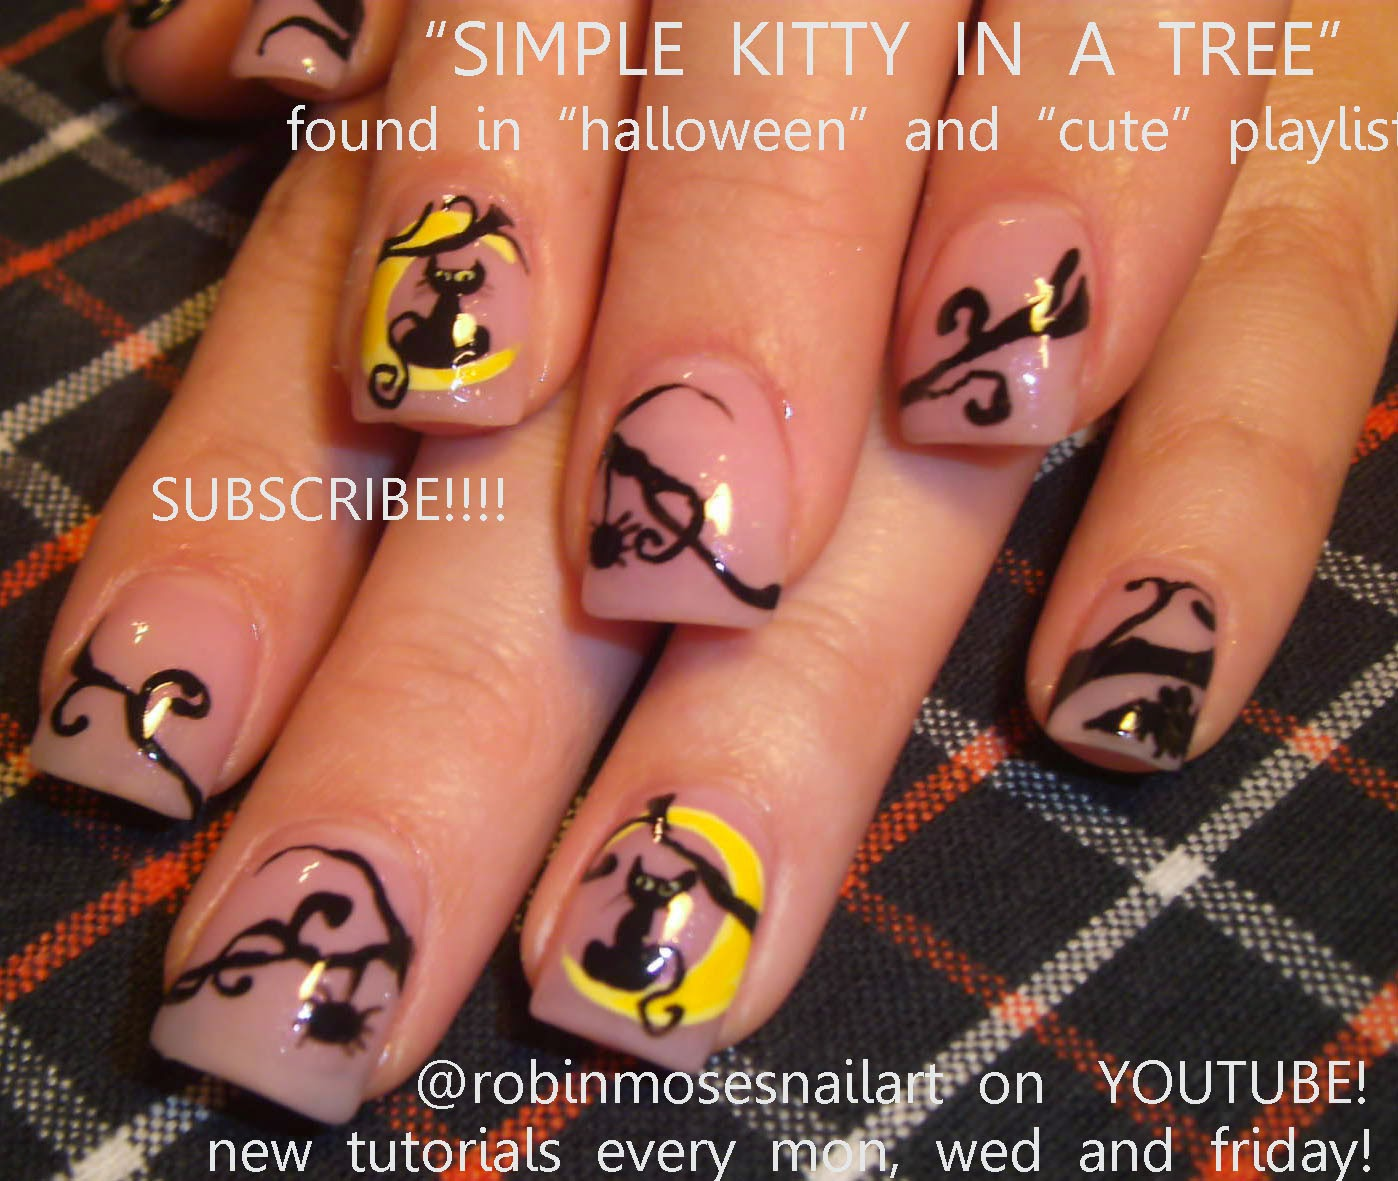 Robin moses nail art halloween nail art halloween nails cute halloween nail art halloween nails cute halloween prinsesfo Choice Image